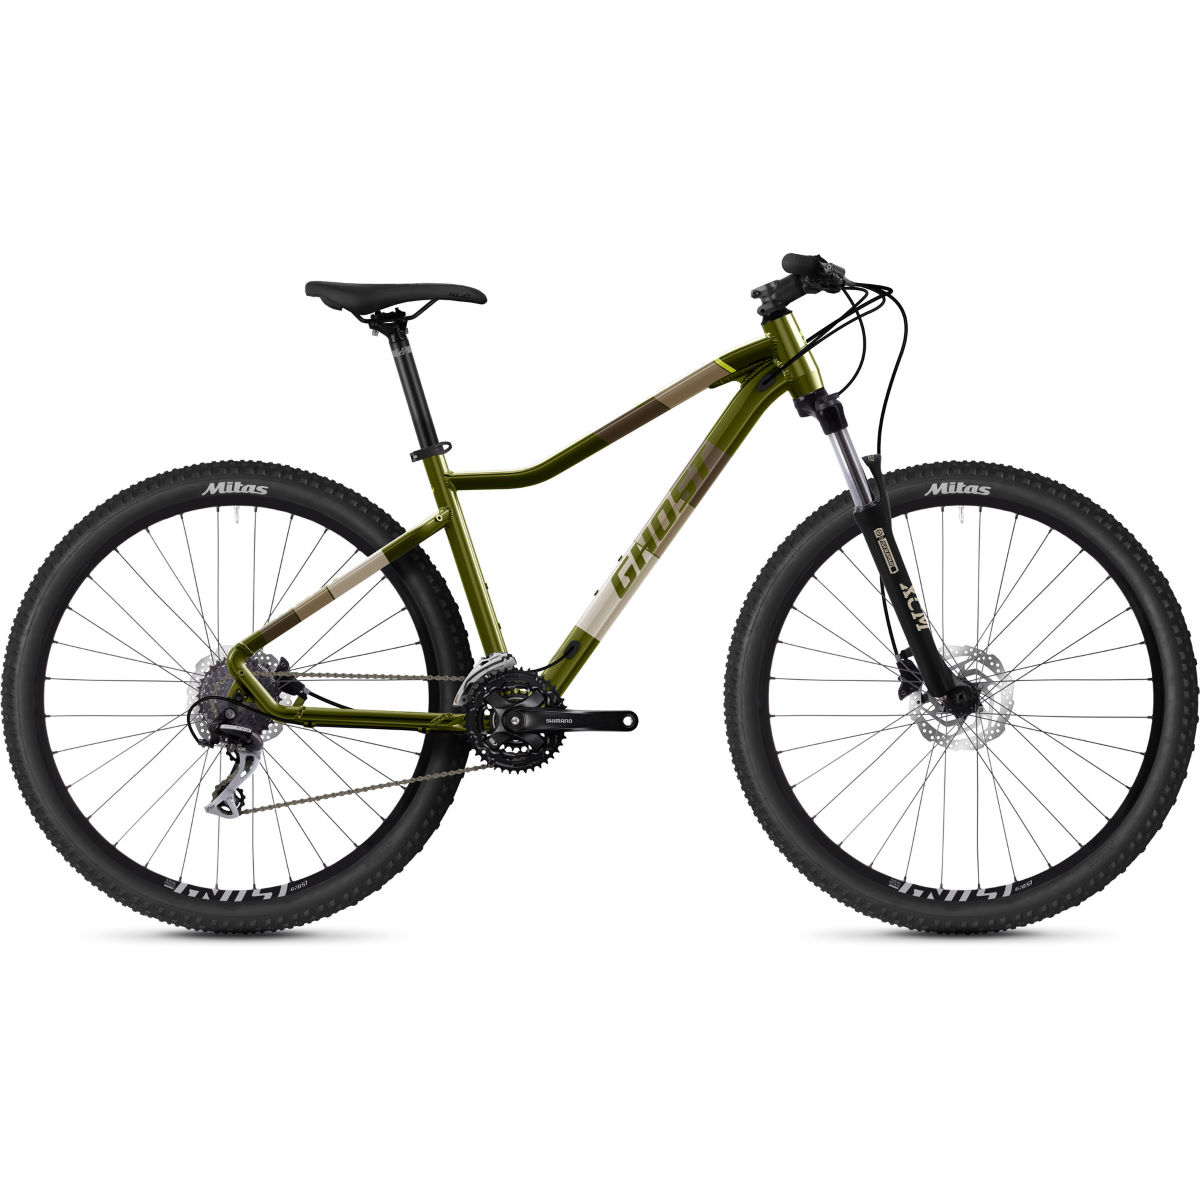 Ghost Ghost Lanao Essential 27.5 Hardtail Bike (2021)   Hard Tail Mountain Bikes